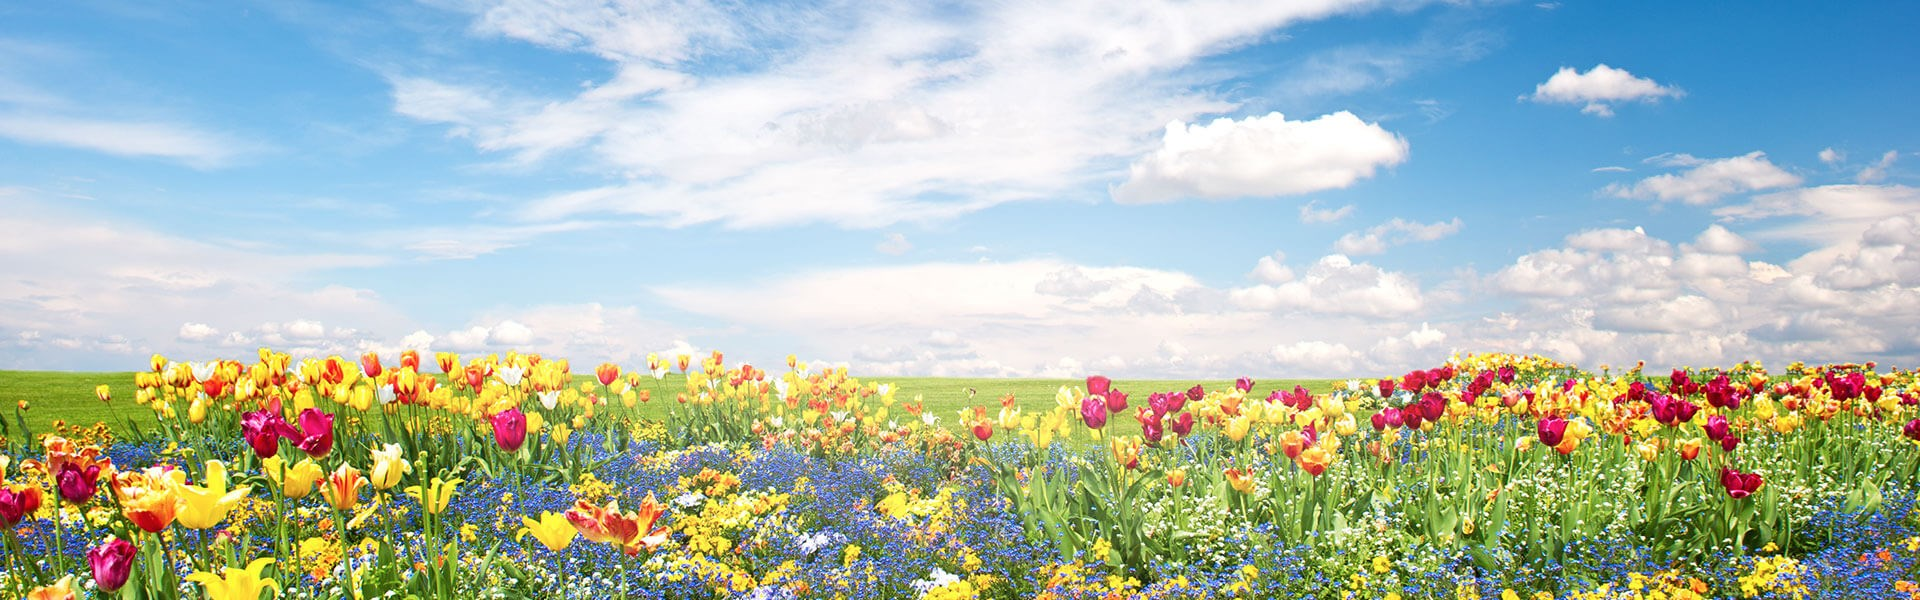 Wide angle of field of summer flowers with sunny blue sky